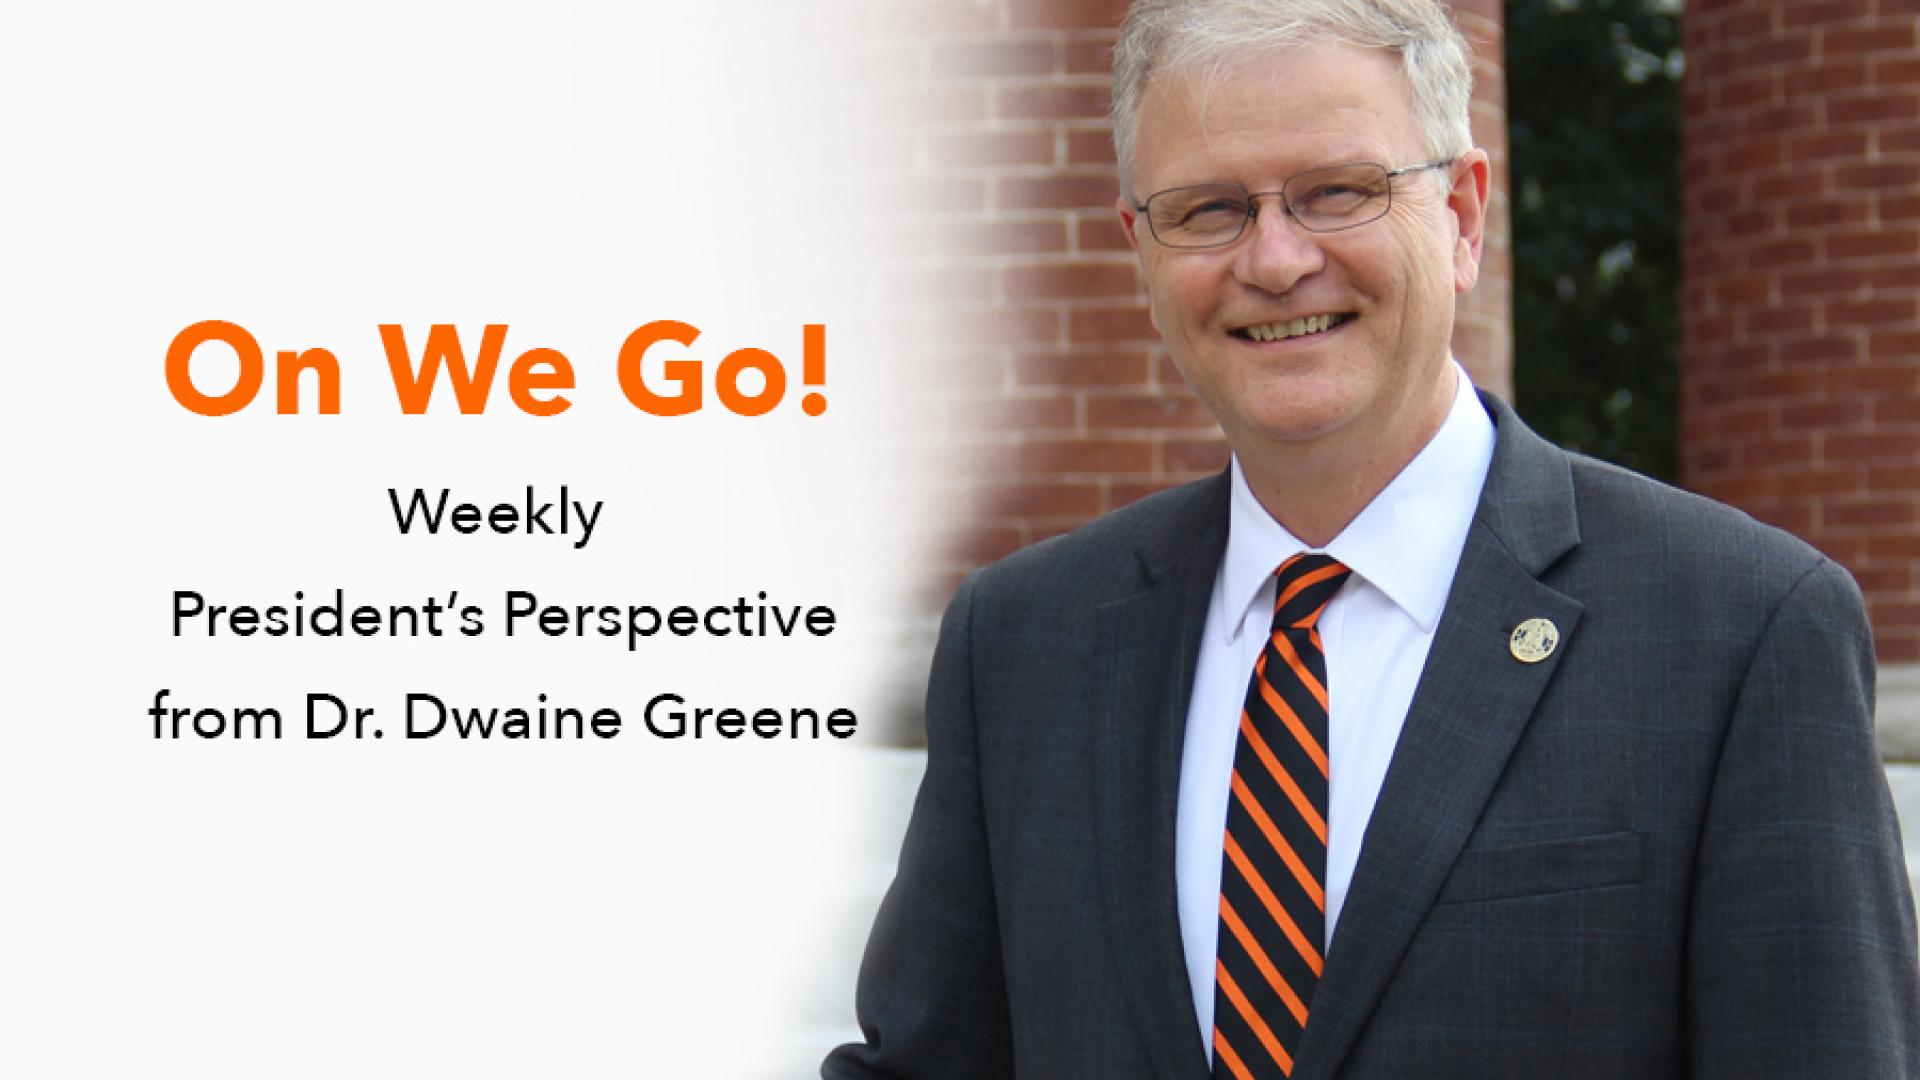 ON WE GO! - Weekly President's Perspective from Dr. Greene - January 31, 2018